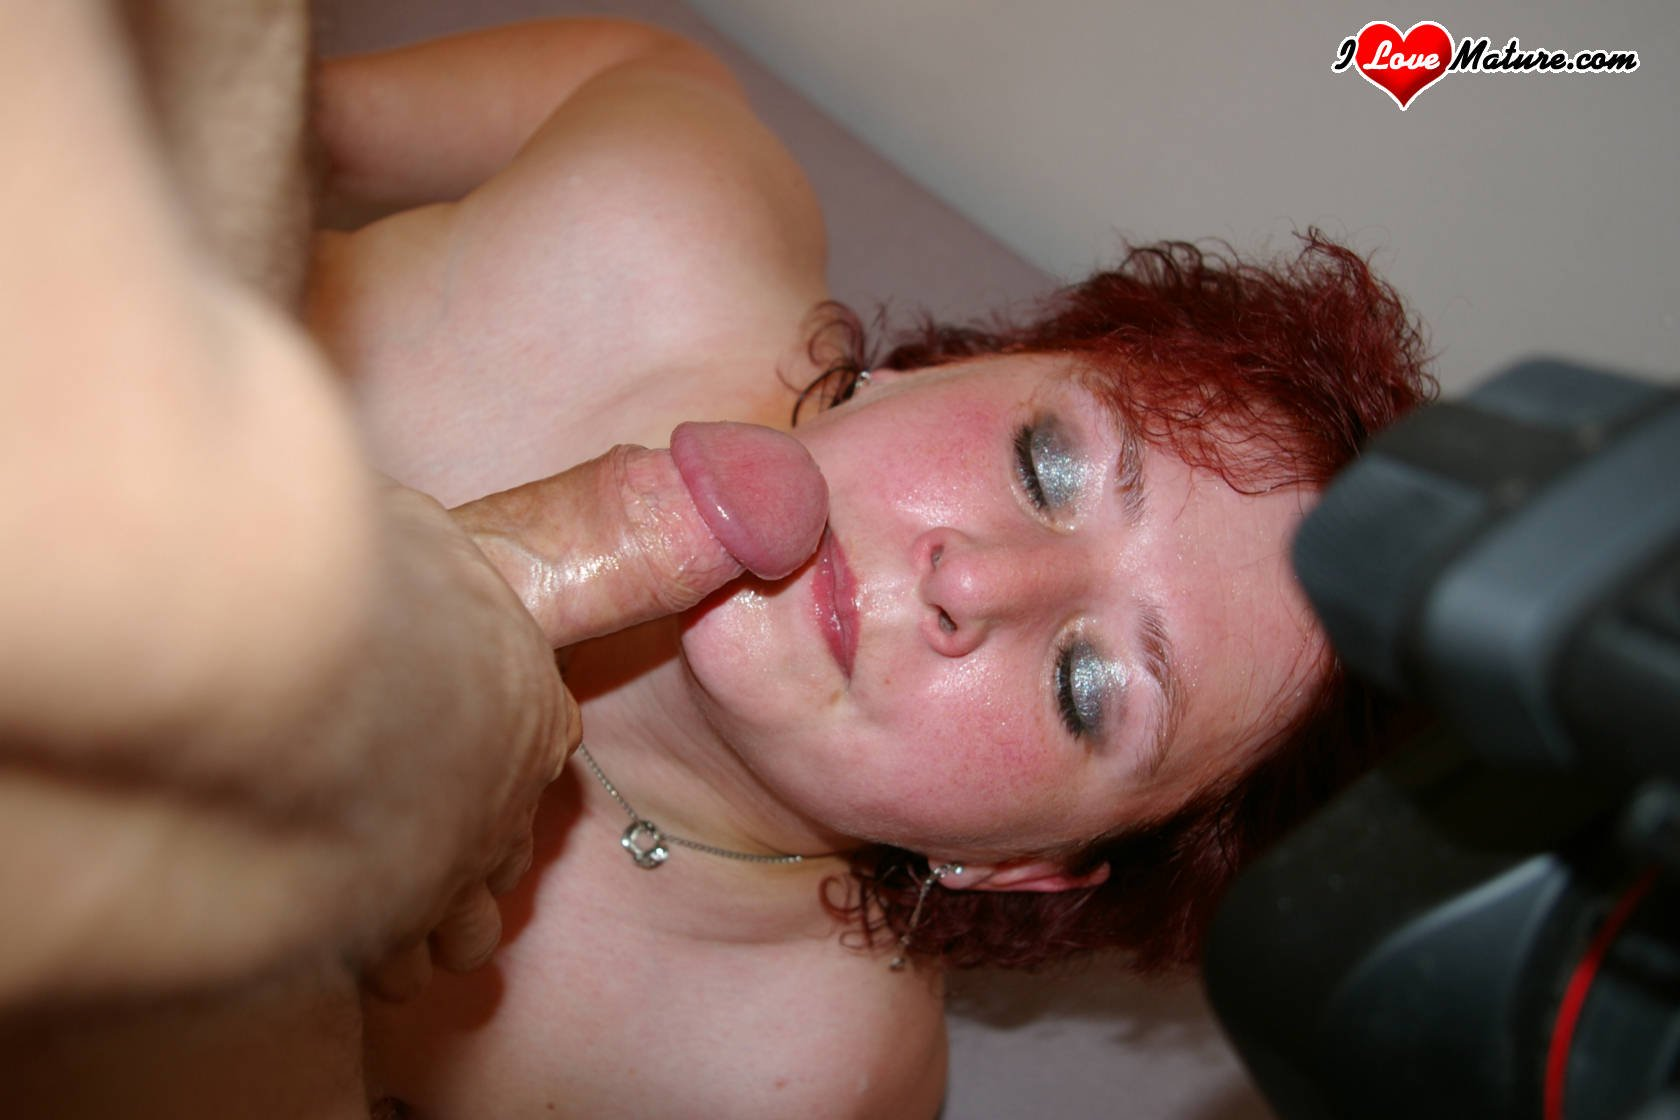 Riding on a dildo #9